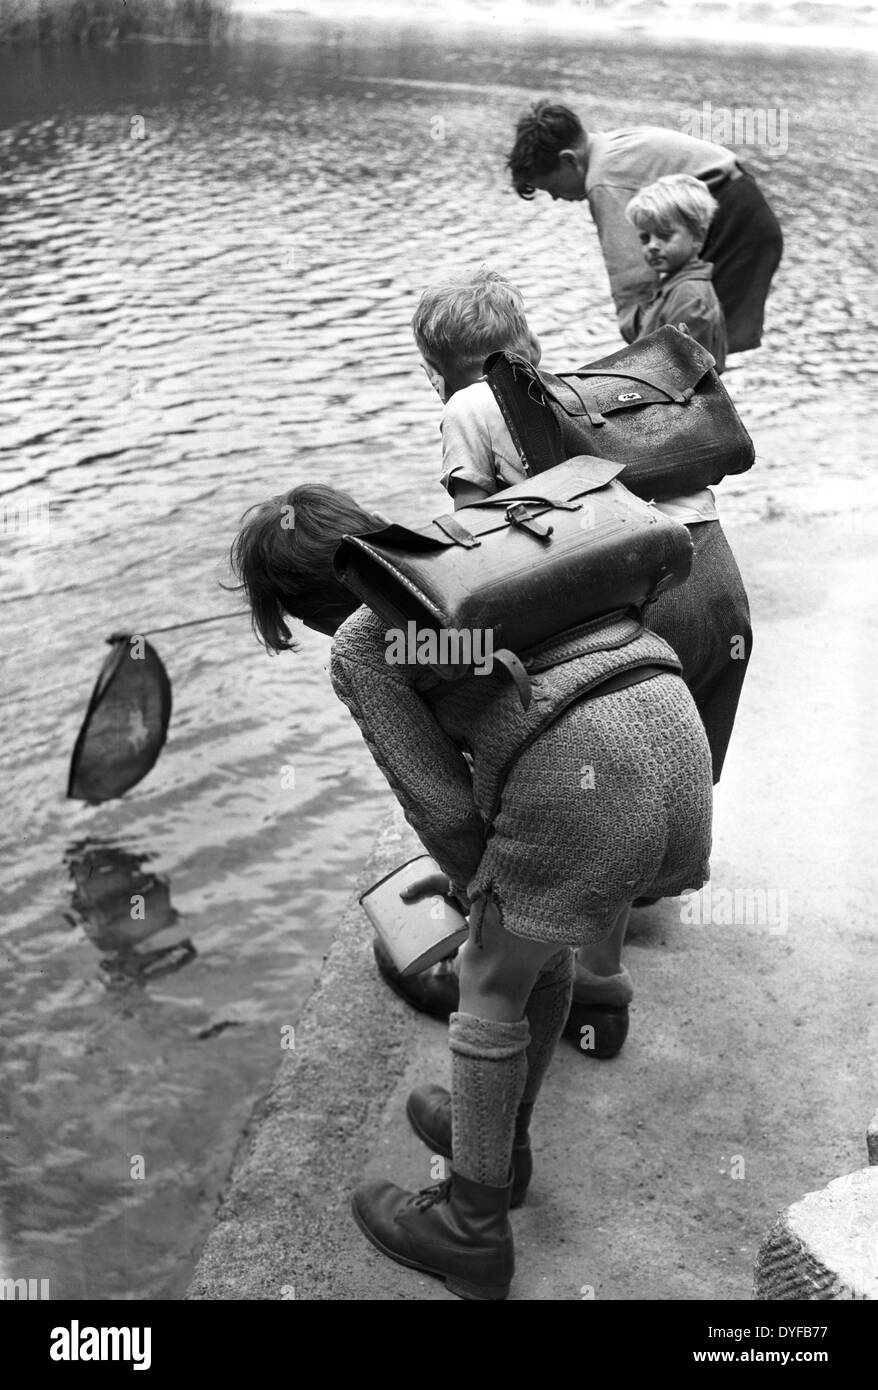 Children are trying to 'fish' on their way home from school. Picture taken in 1948 in Berlin. - Stock Image